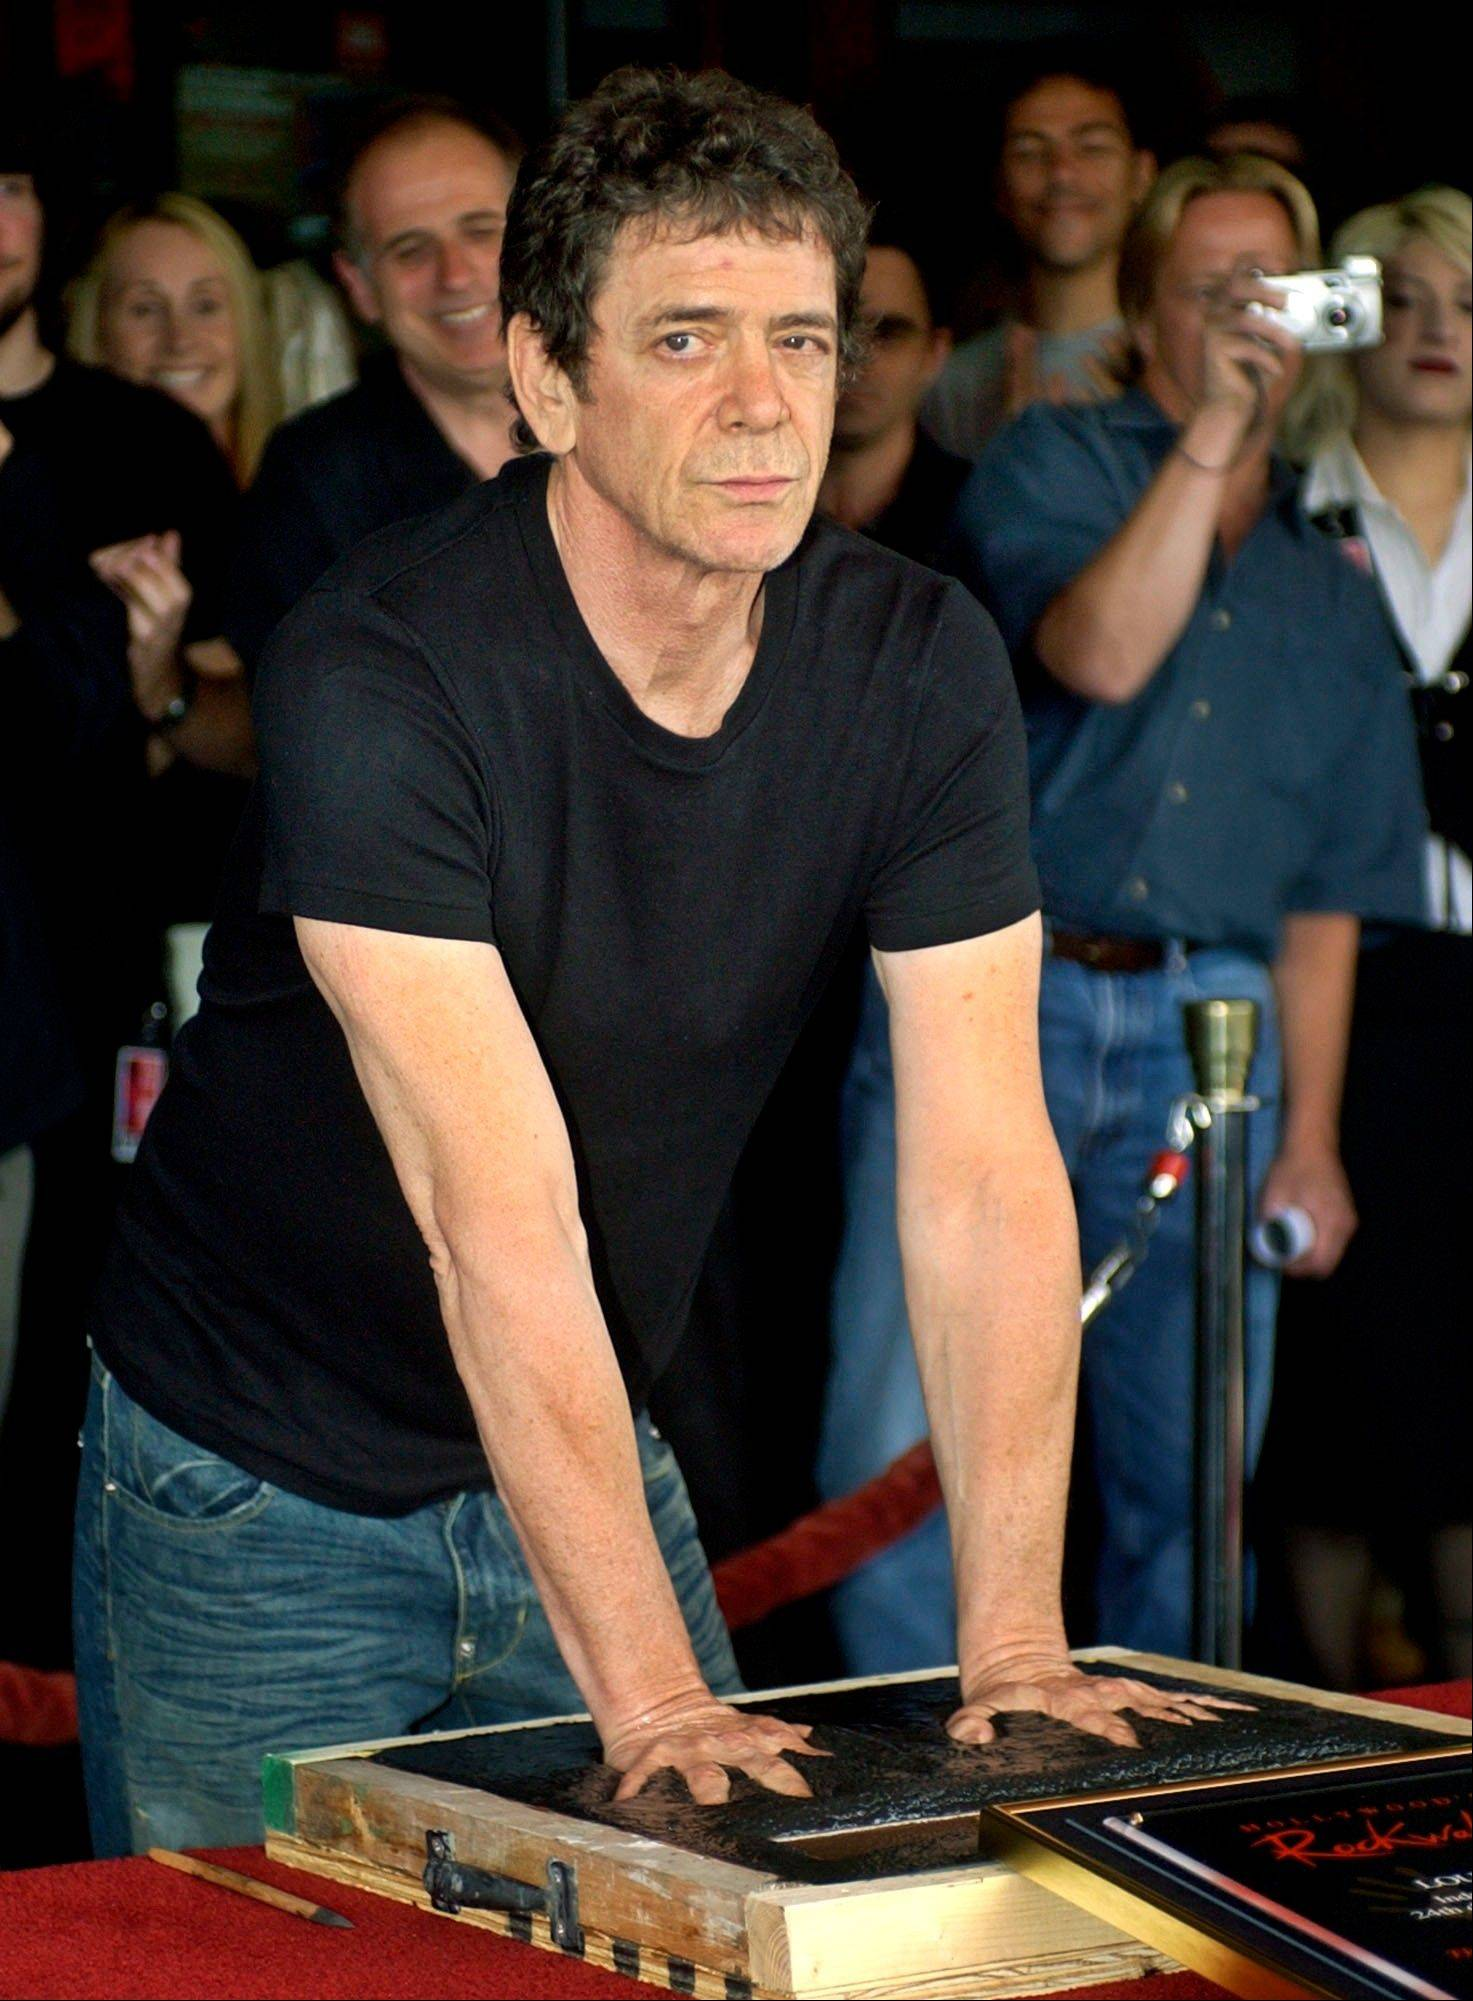 On June 24, 2003, Lou Reed has his hands imprinted as he is inducted into Hollywood's Rockwalk, in the Hollywood section of Los Angeles.